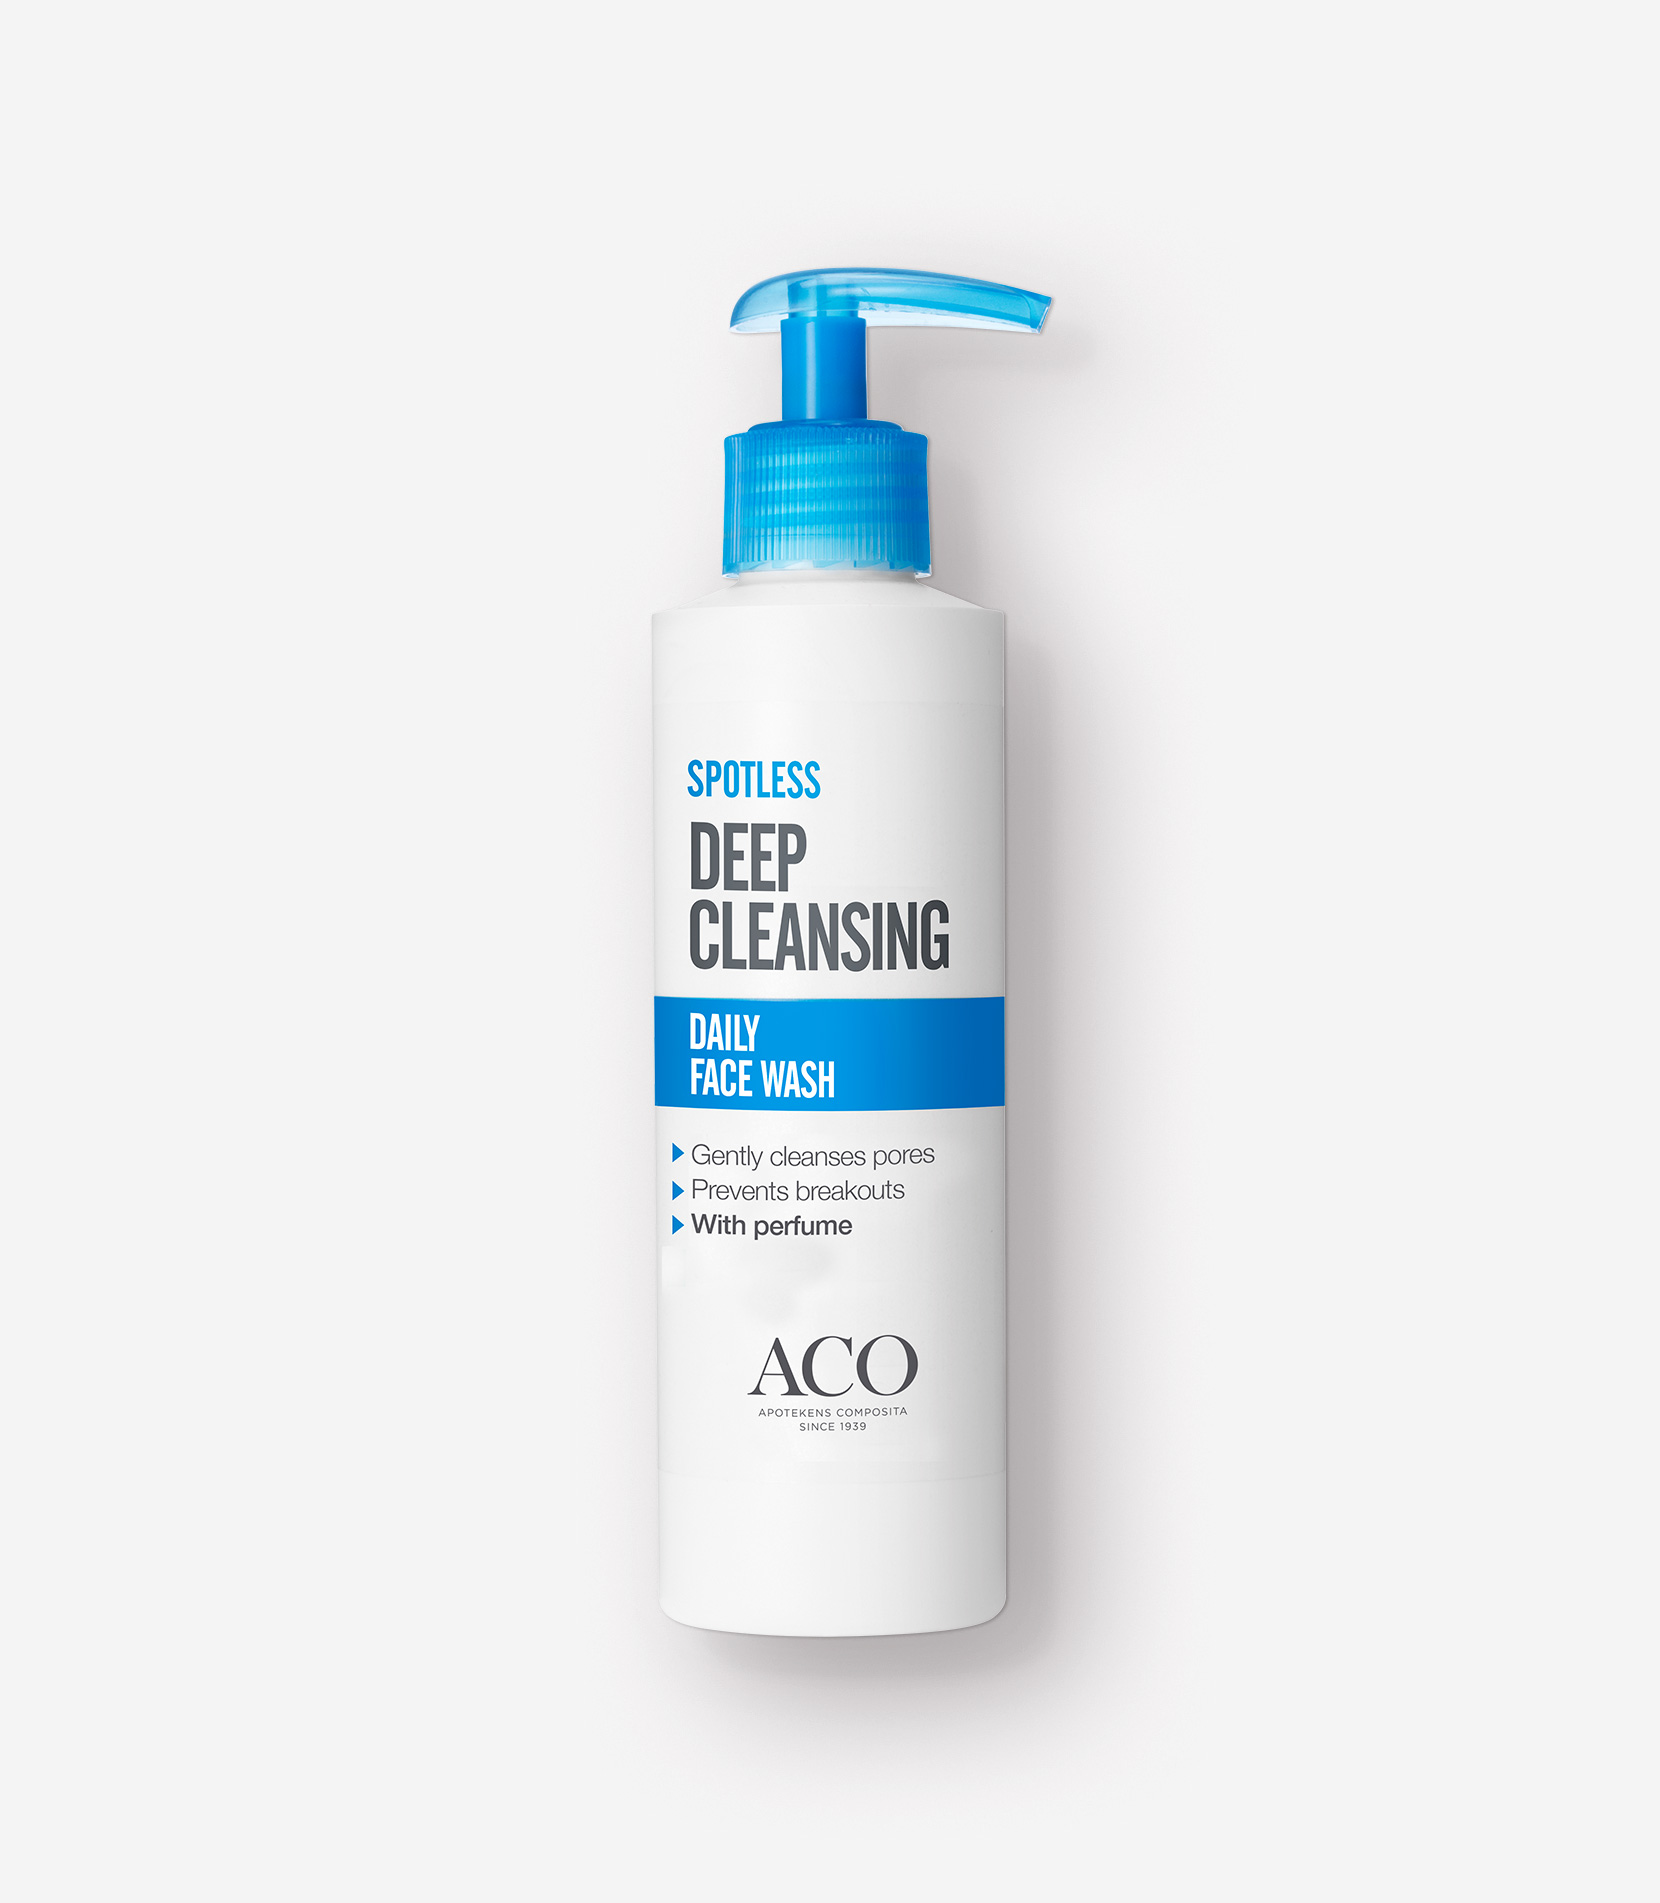 spotless deep cleansing daily face wash